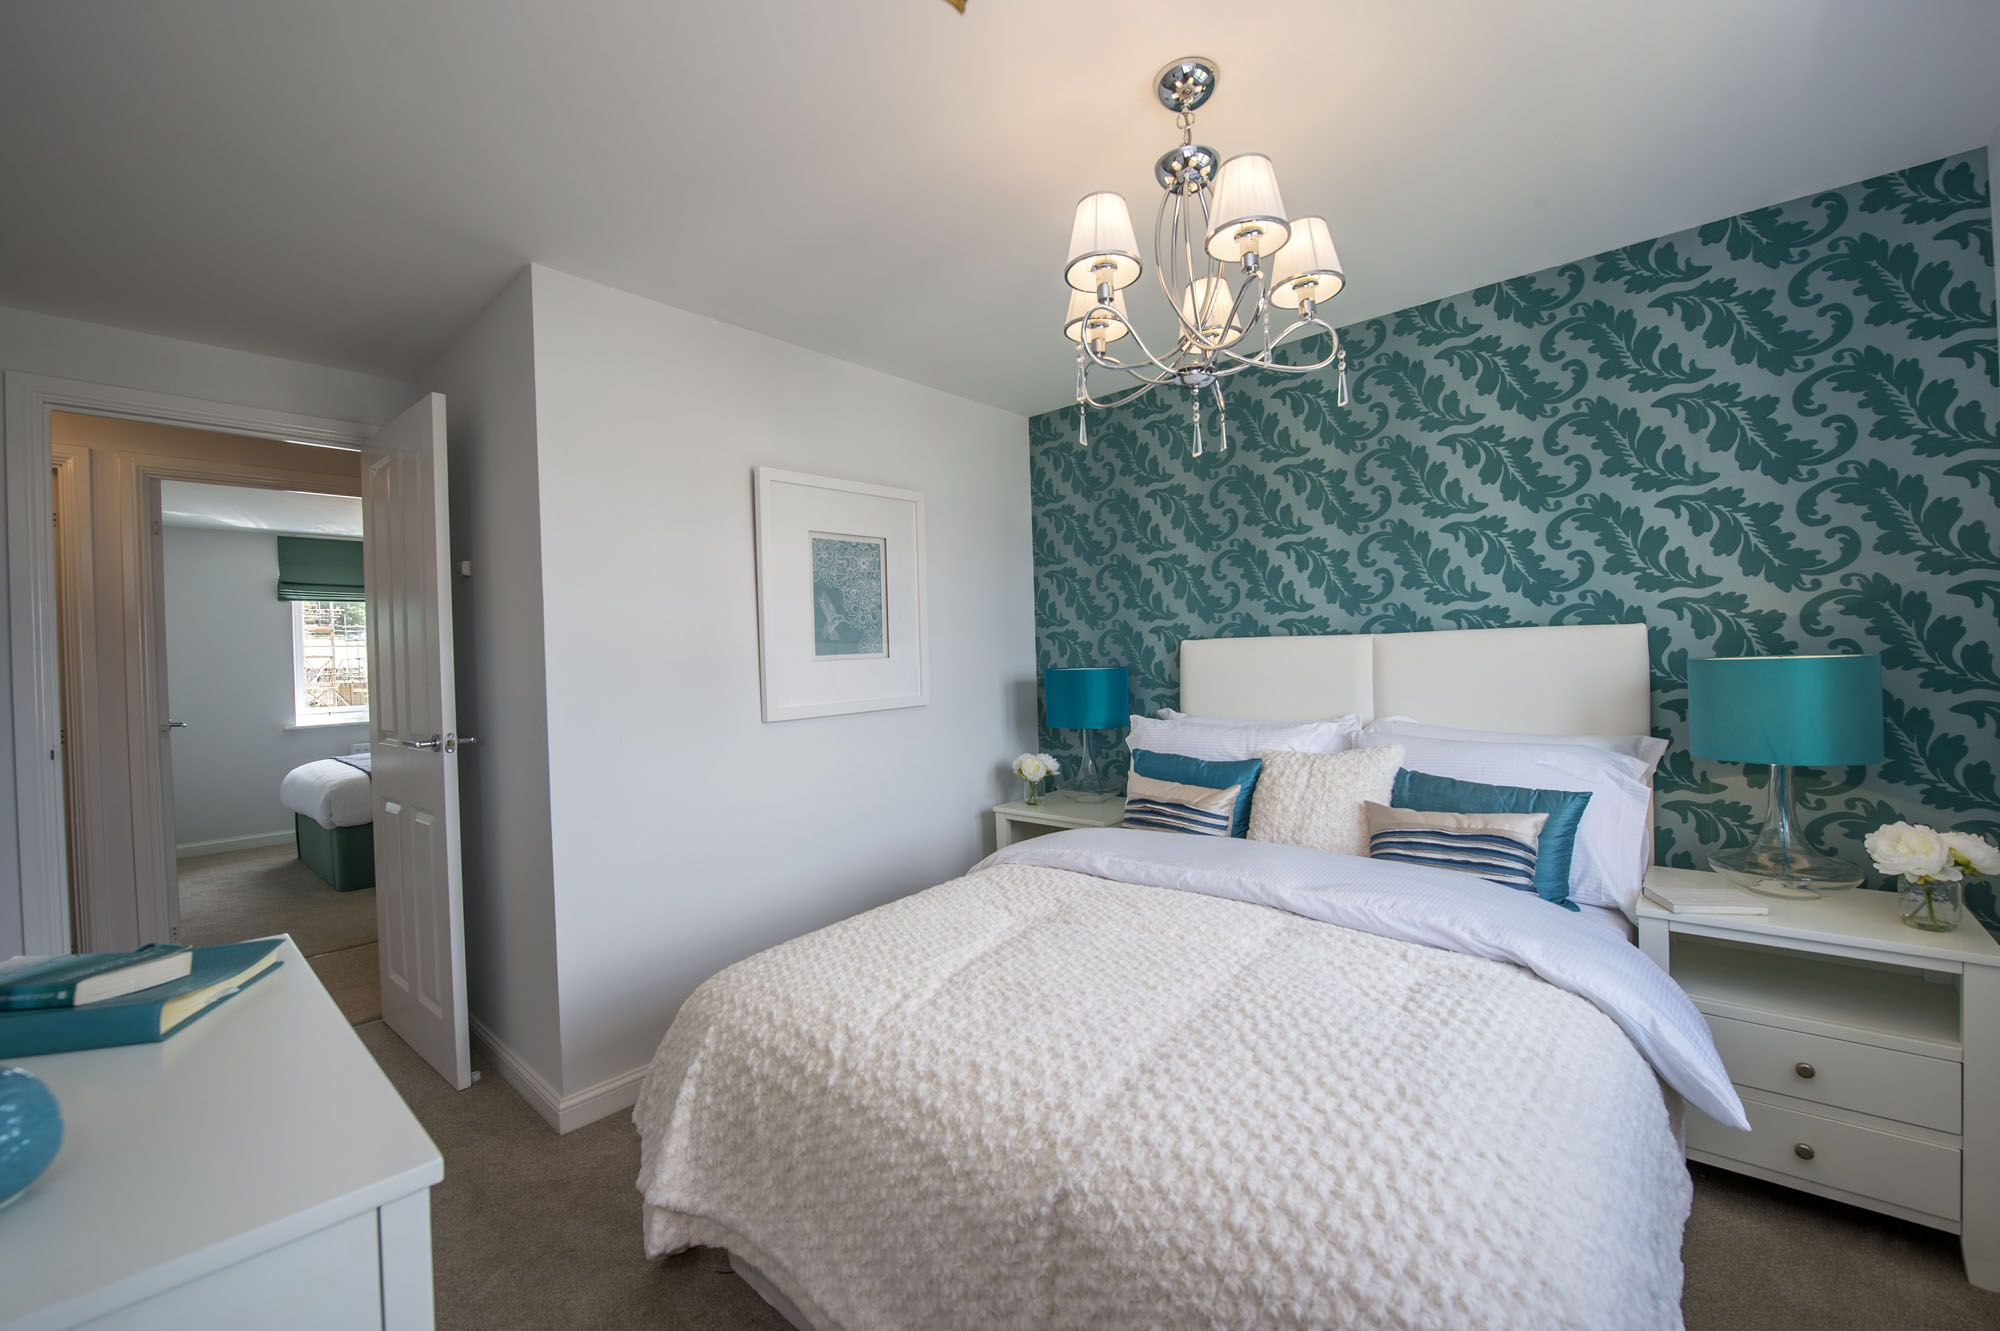 interior designed modern guest bedroom using aqua teal and chalk white colour scheme love those metallic teal lamp shades and the leaf wallpaper - Metallic Bedroom 2015